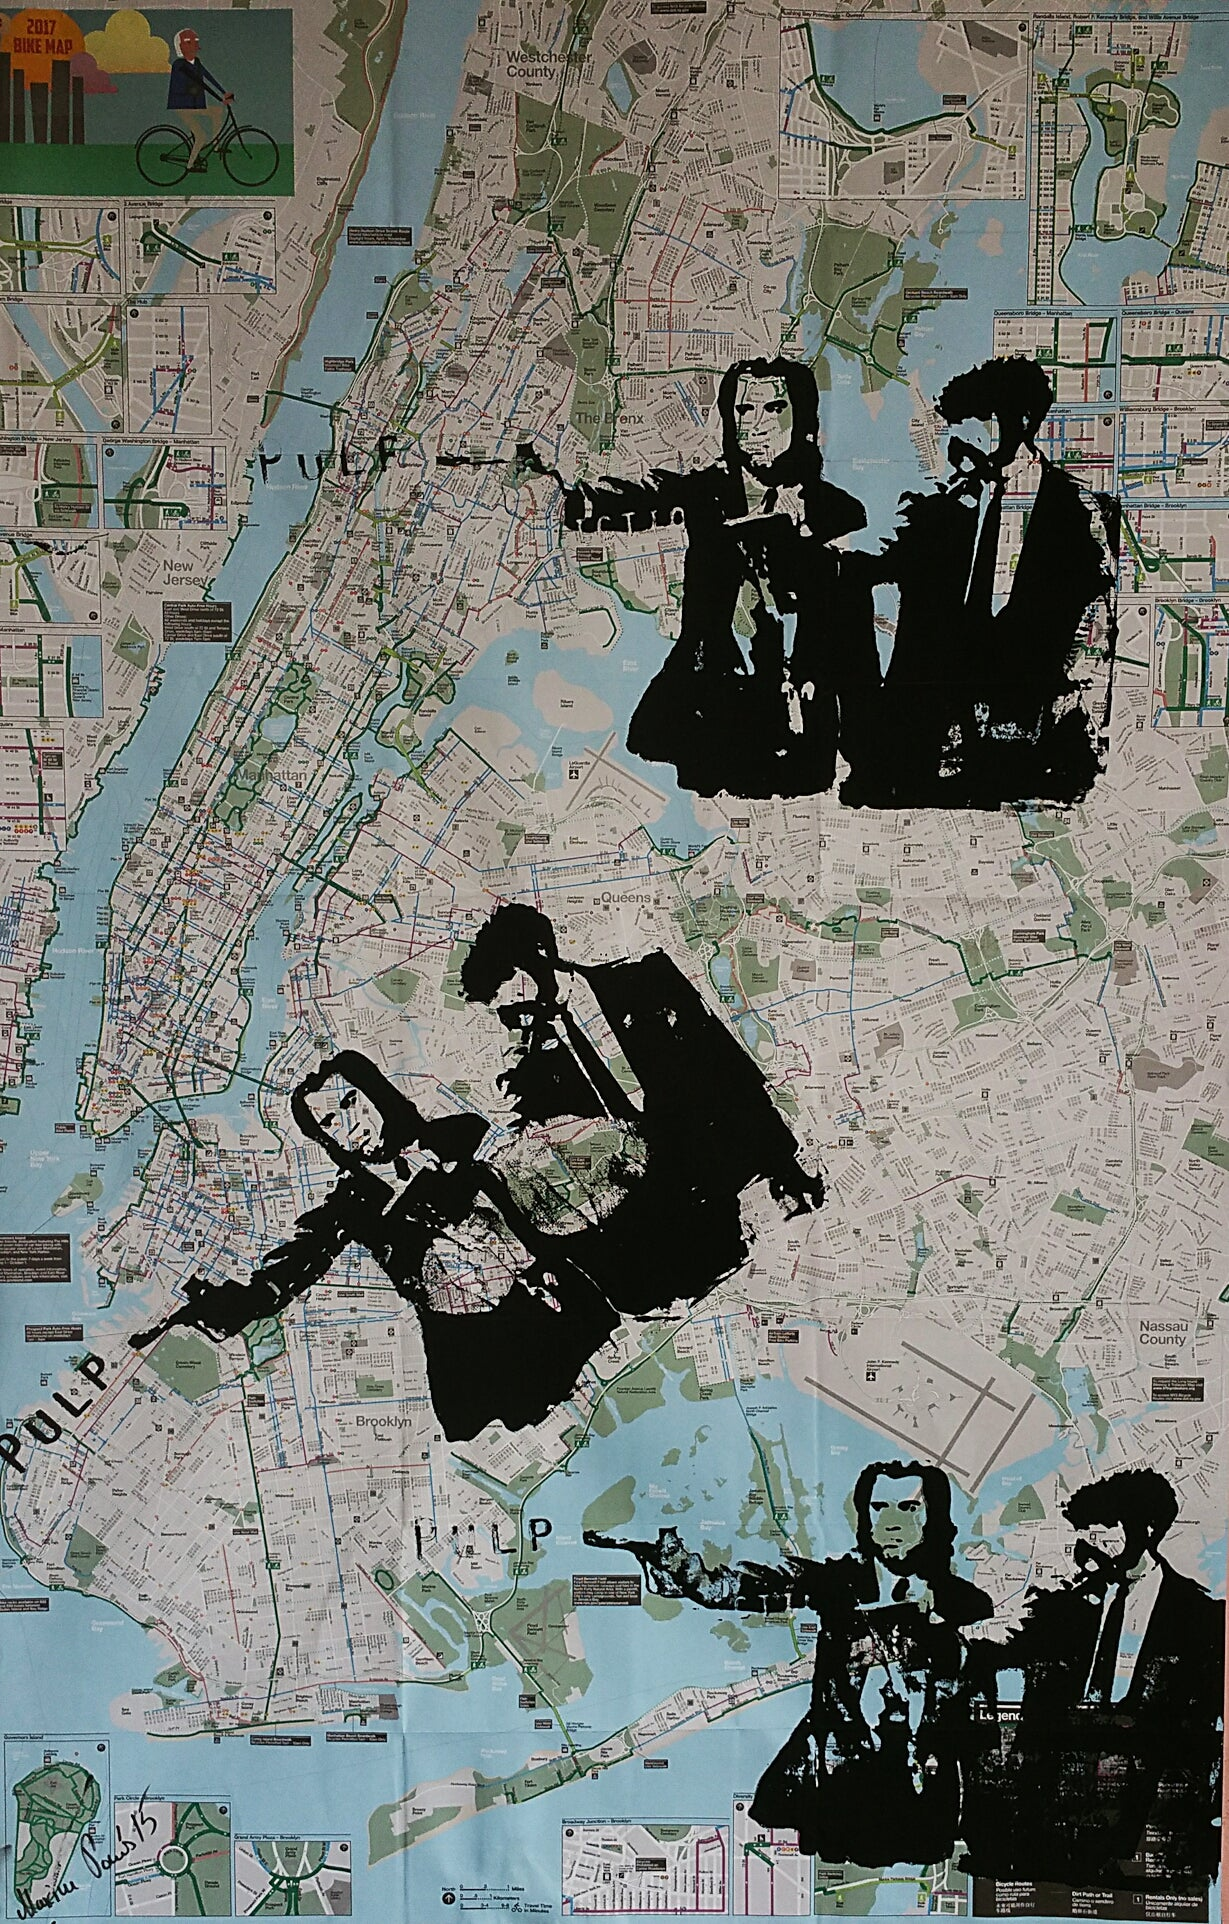 New York Subway Map For Sale.Original Silk Screen Pulp Fiction Artwork On New York City Bike And Subway Maps